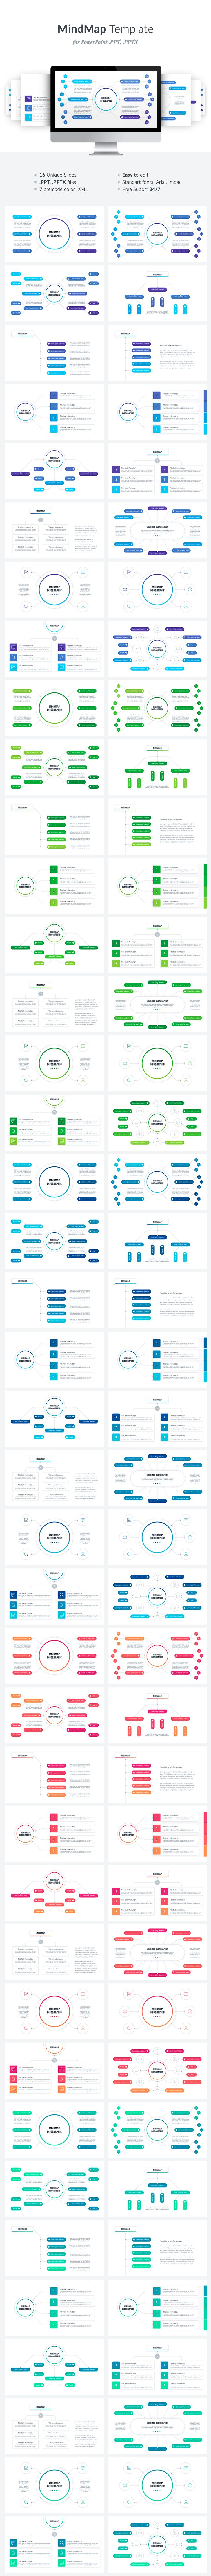 57 best PowerPoint Template images on Pinterest | Ui ux, Animation ...